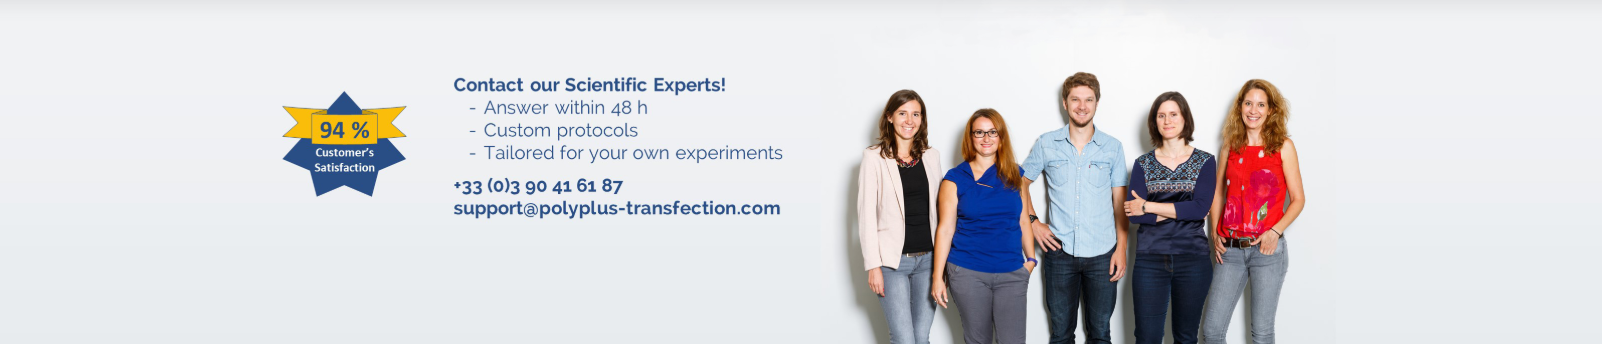 Polyplus-transfection Technical Support